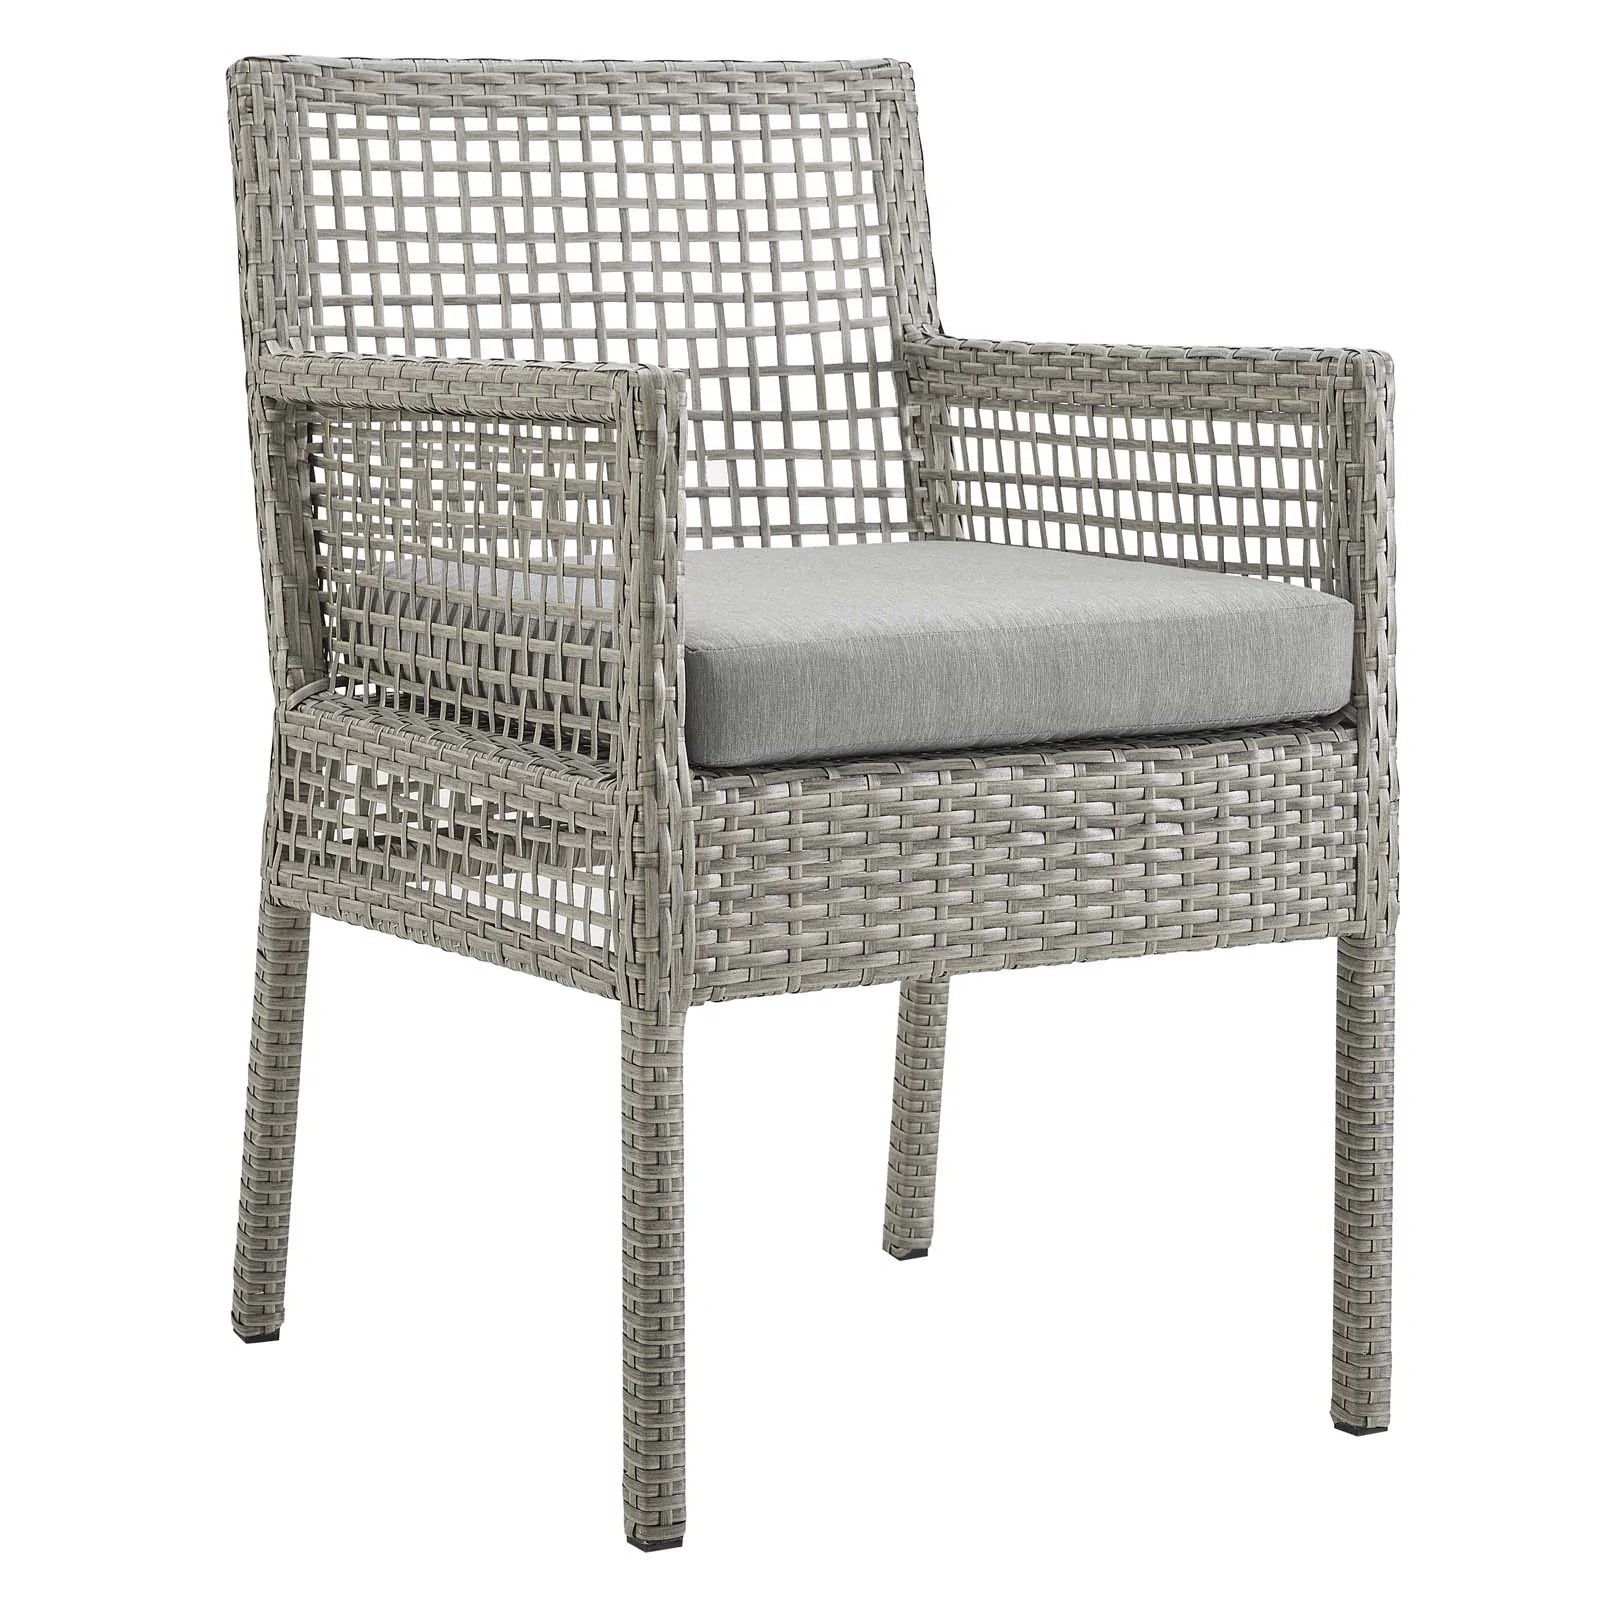 outdoor dining chairs sale van gogh chair modway on eei 2920 gry aura patio wicker rattan armchair gray